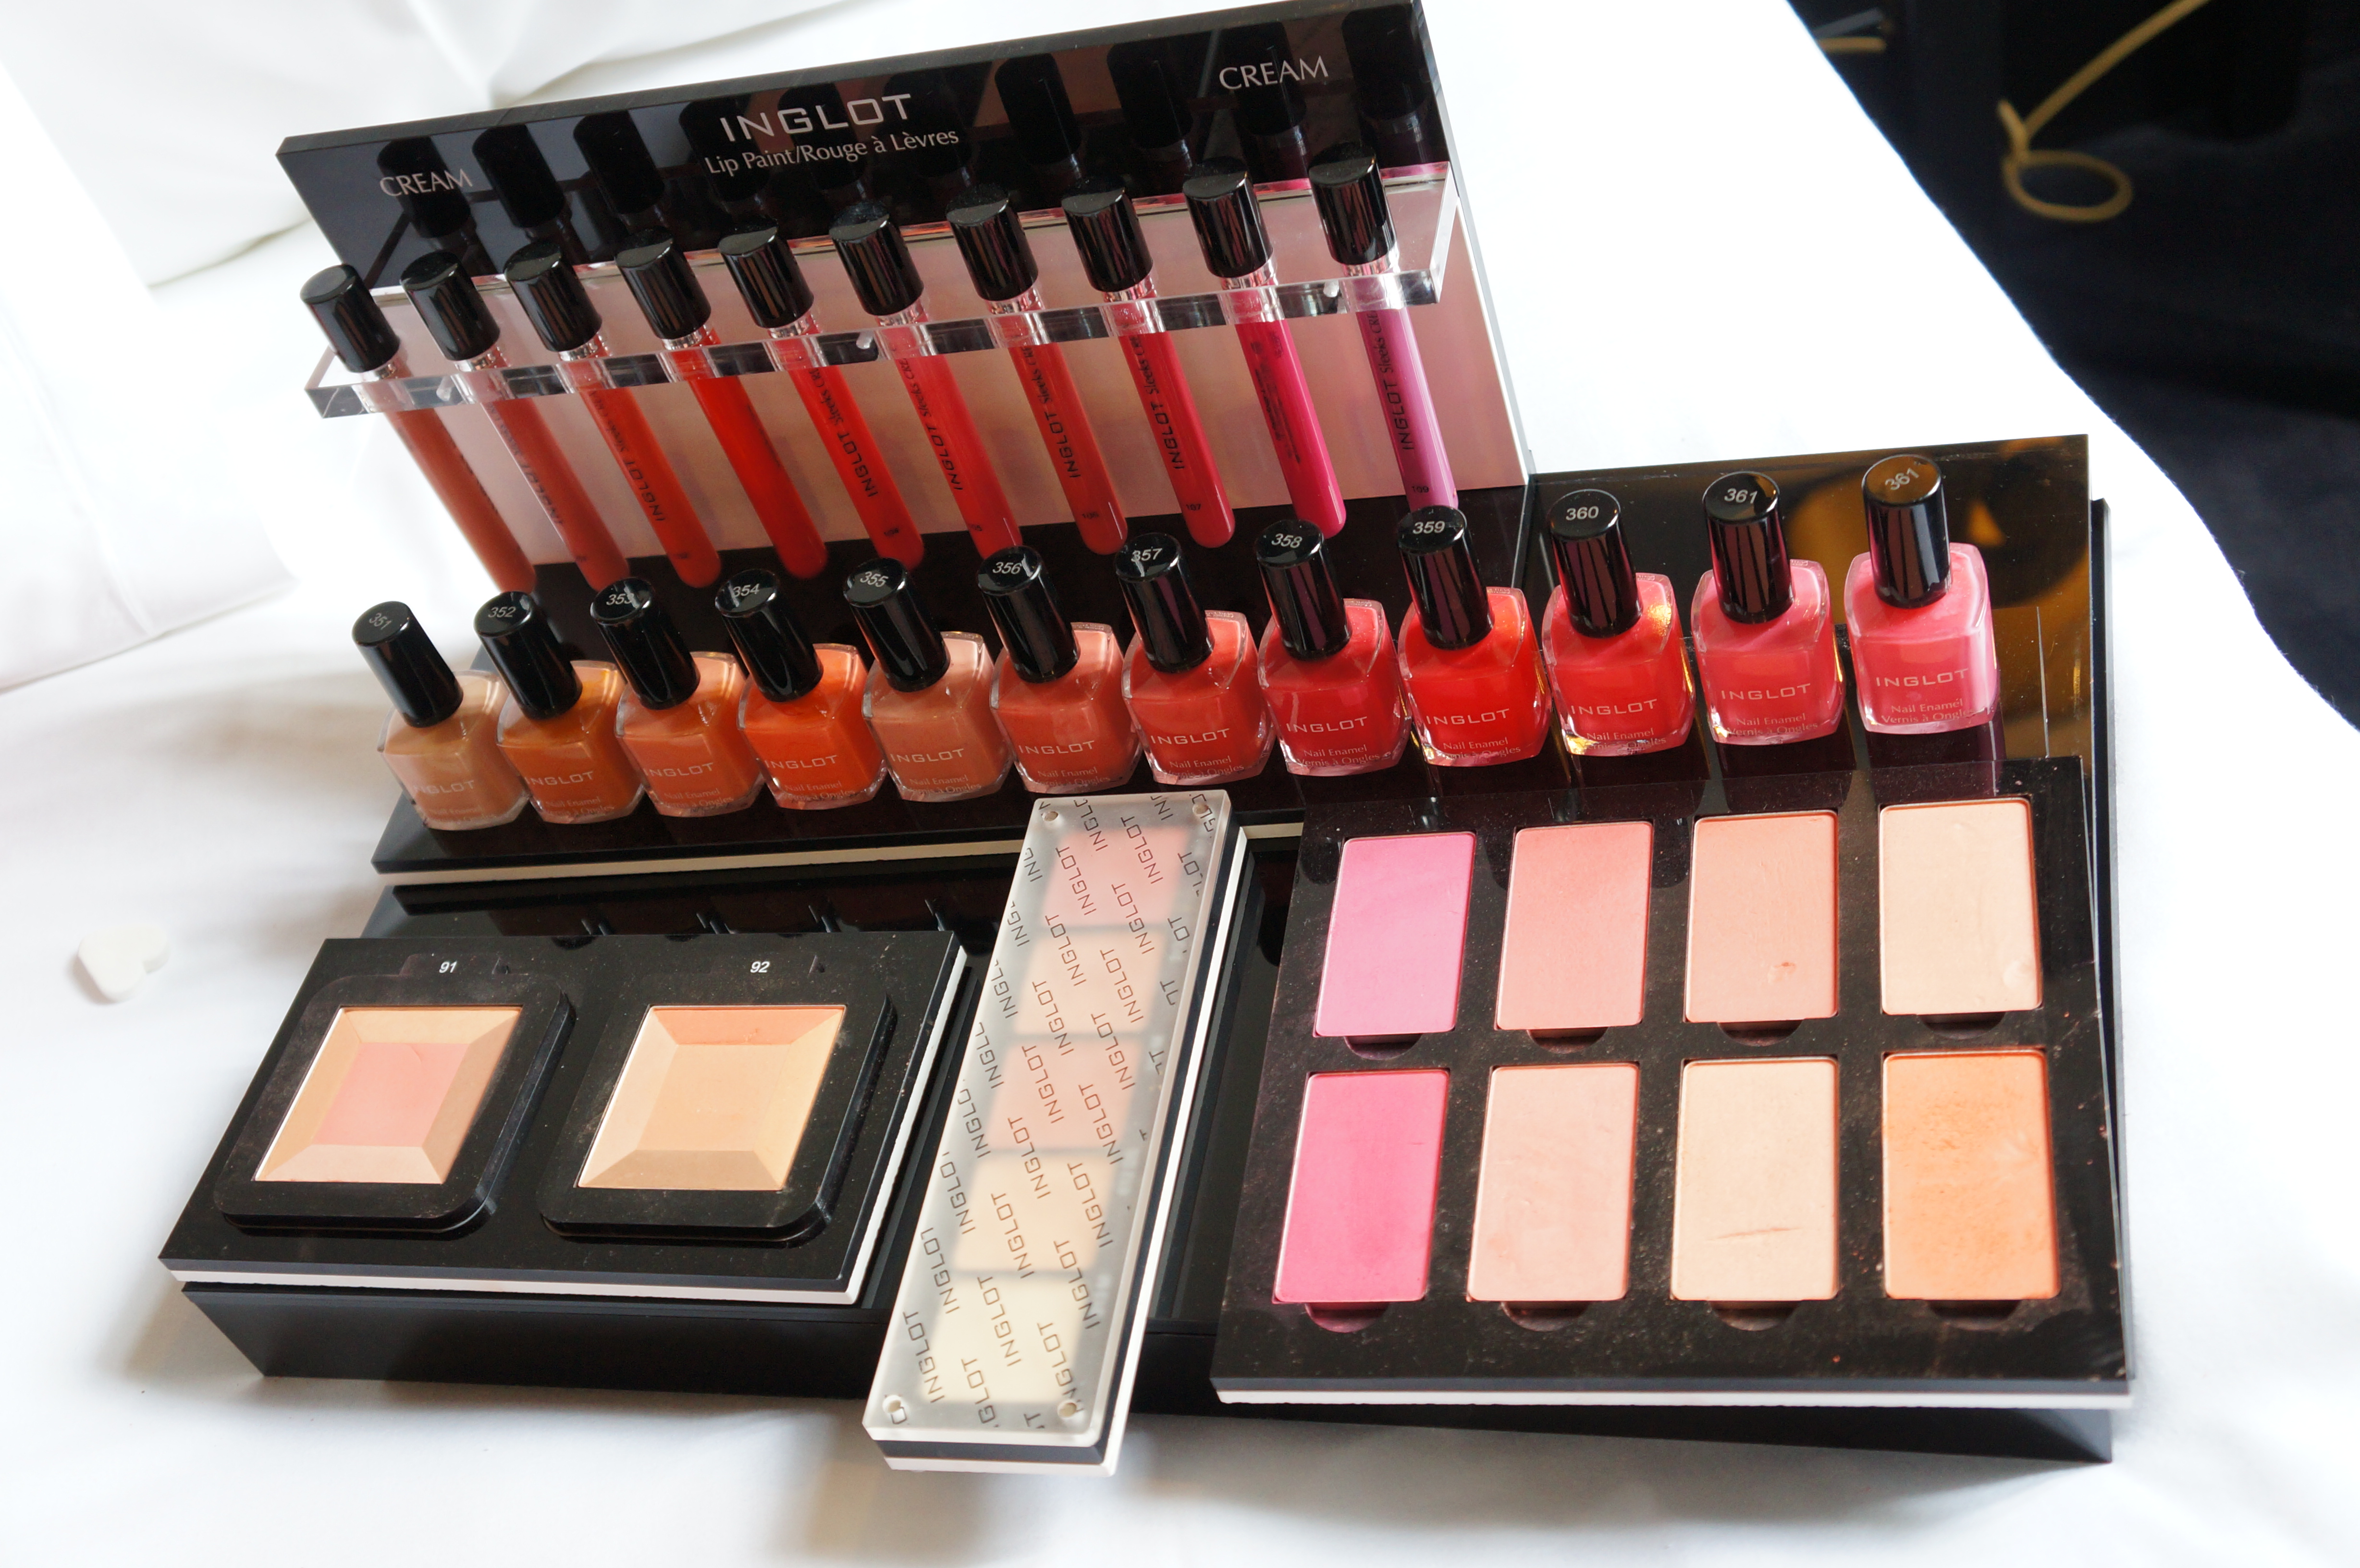 Inglot/ Pic by kiwikoo